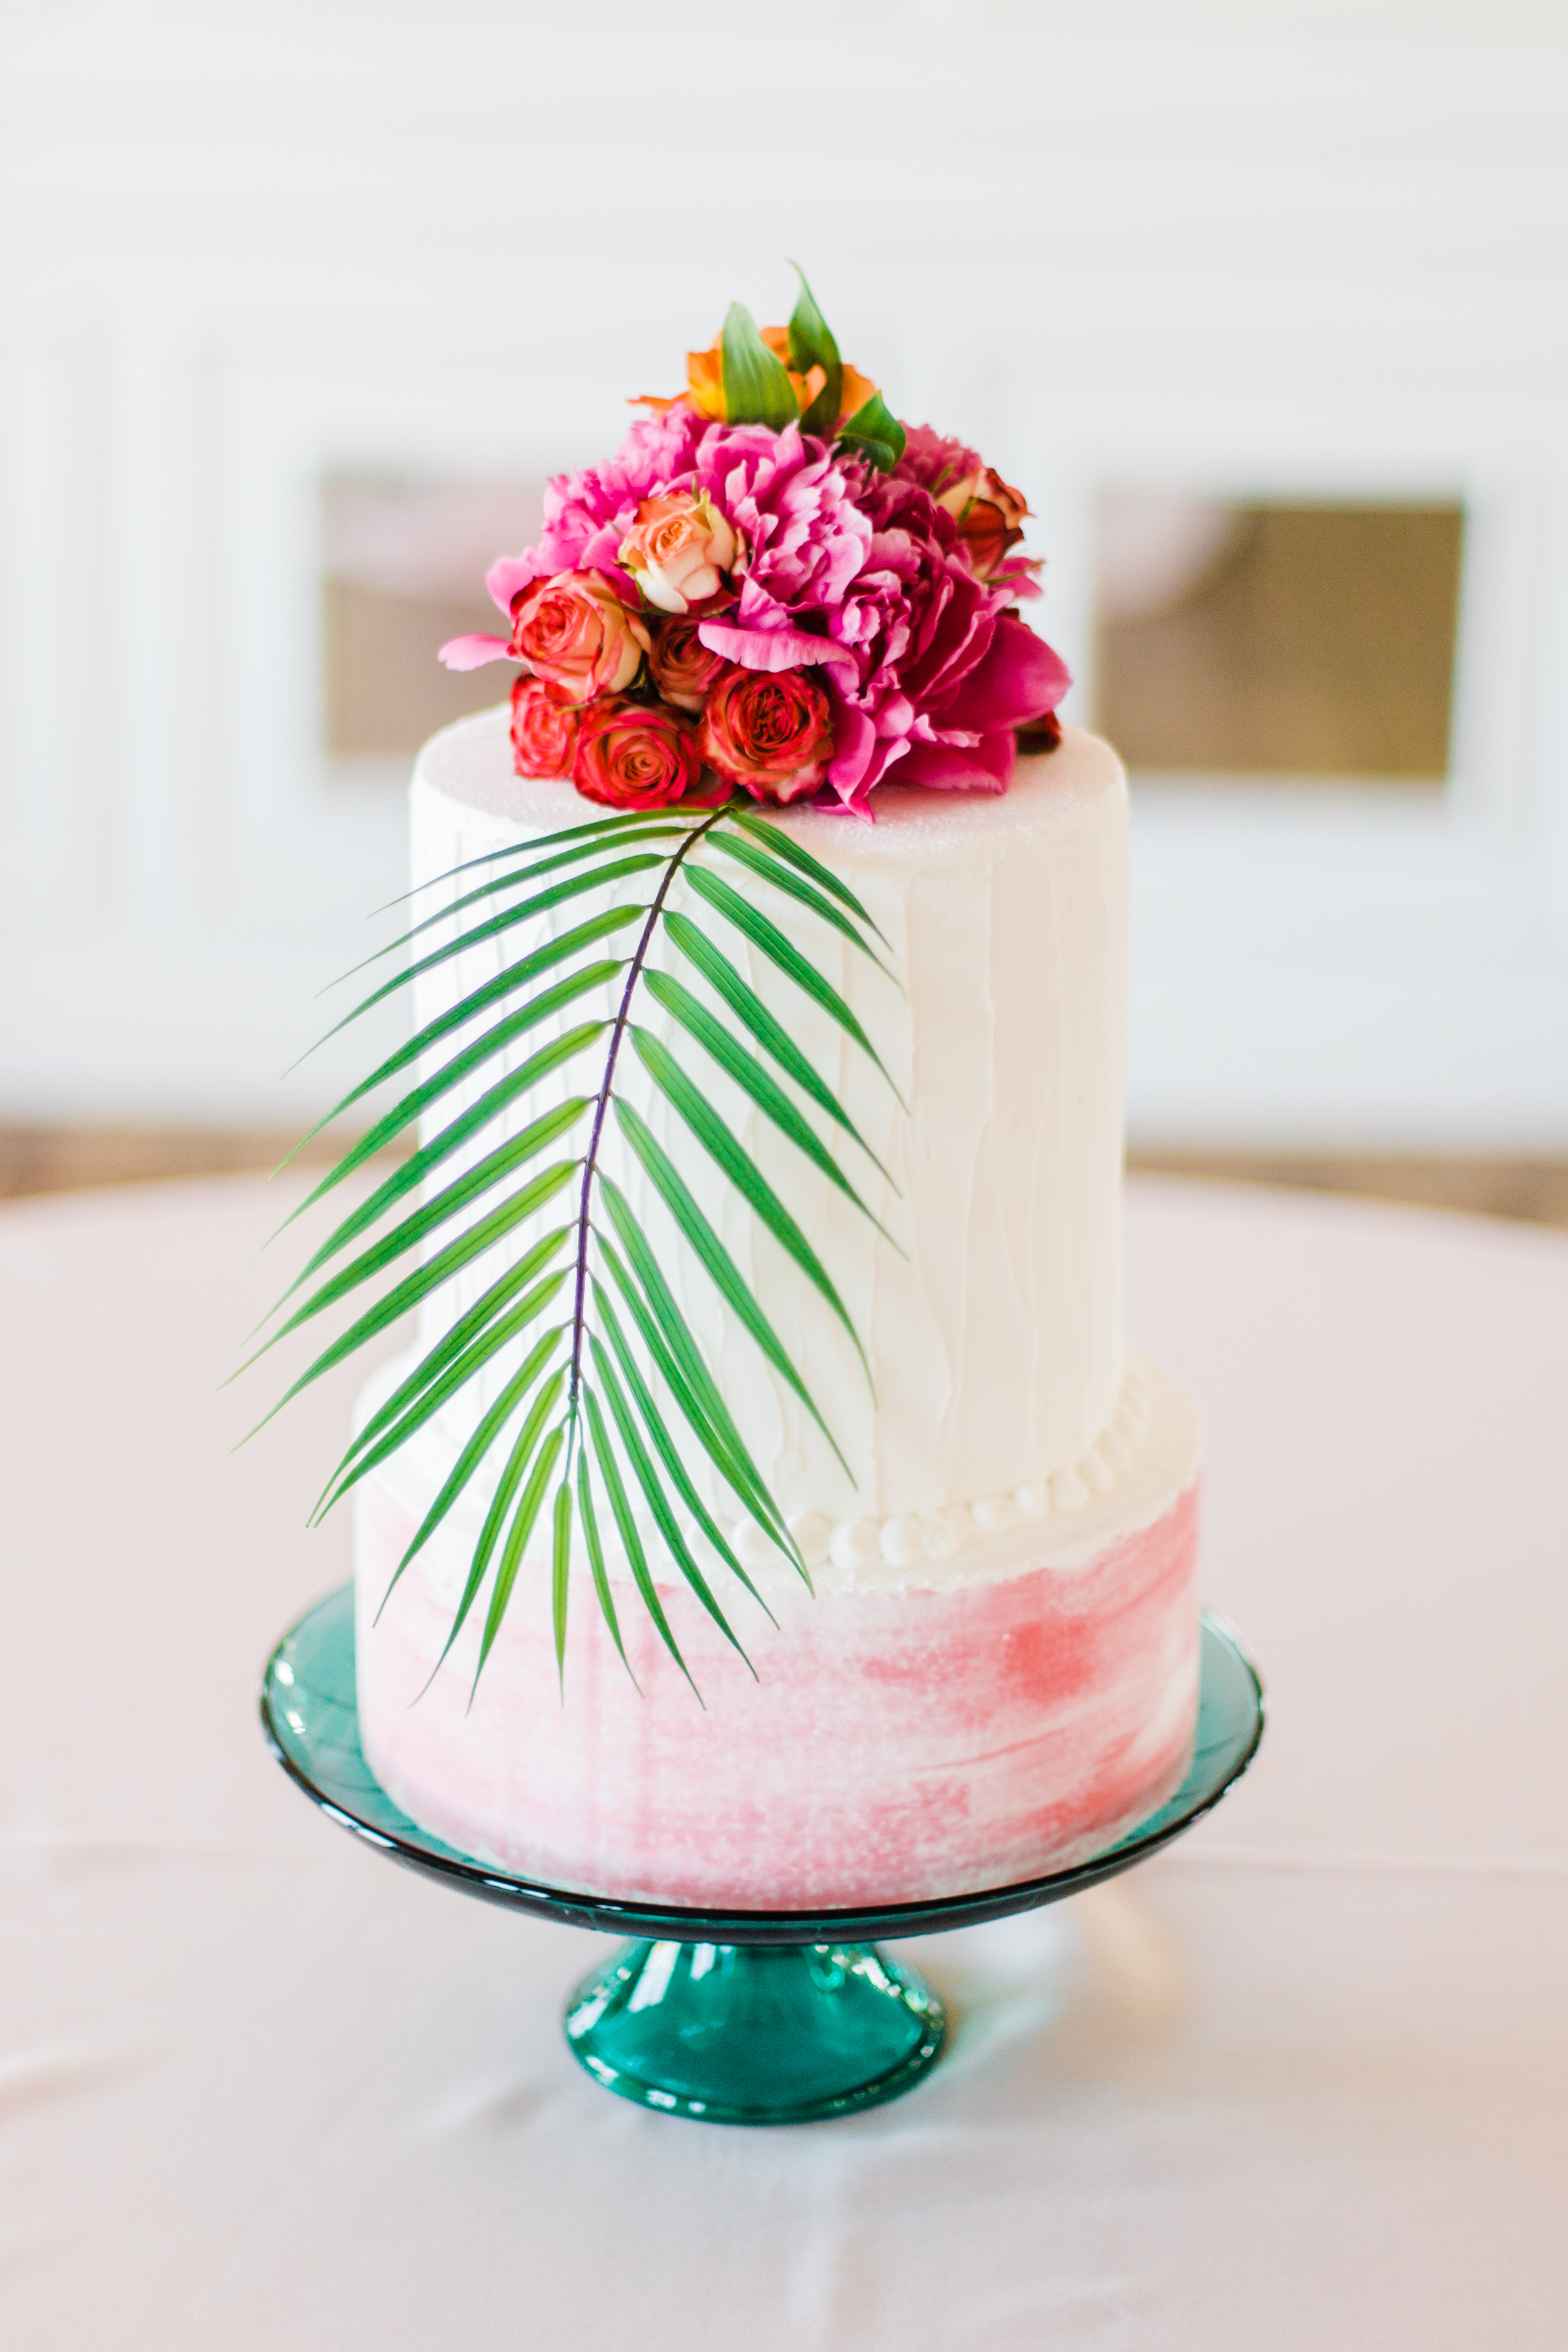 Highlights cake and florals